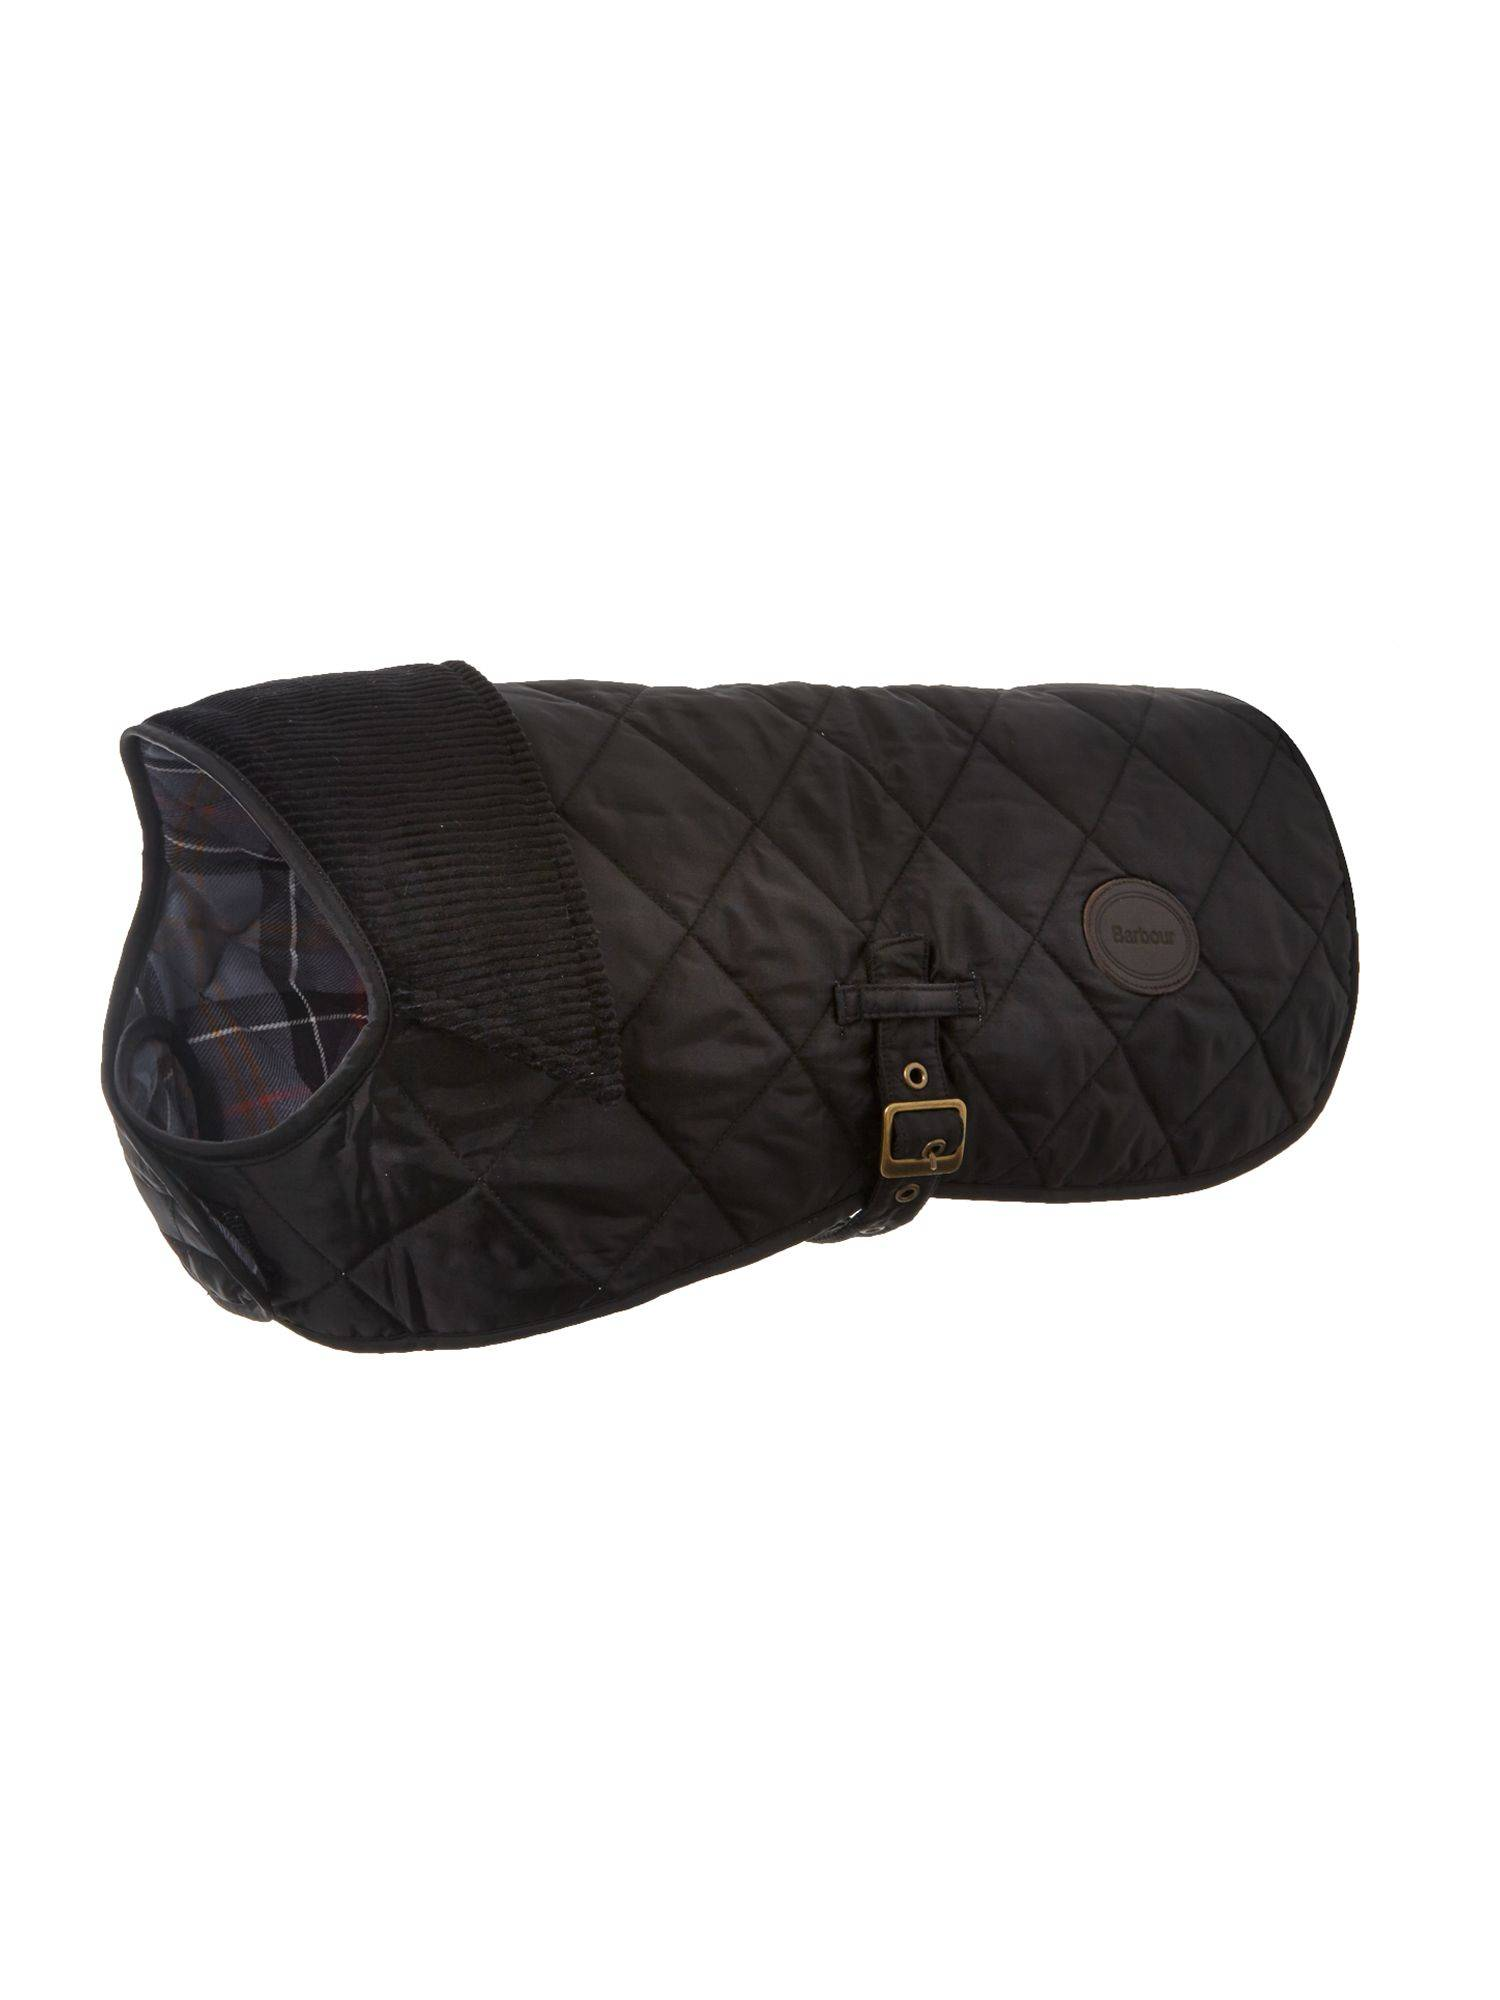 Barbour Quilted dog coat (XS)